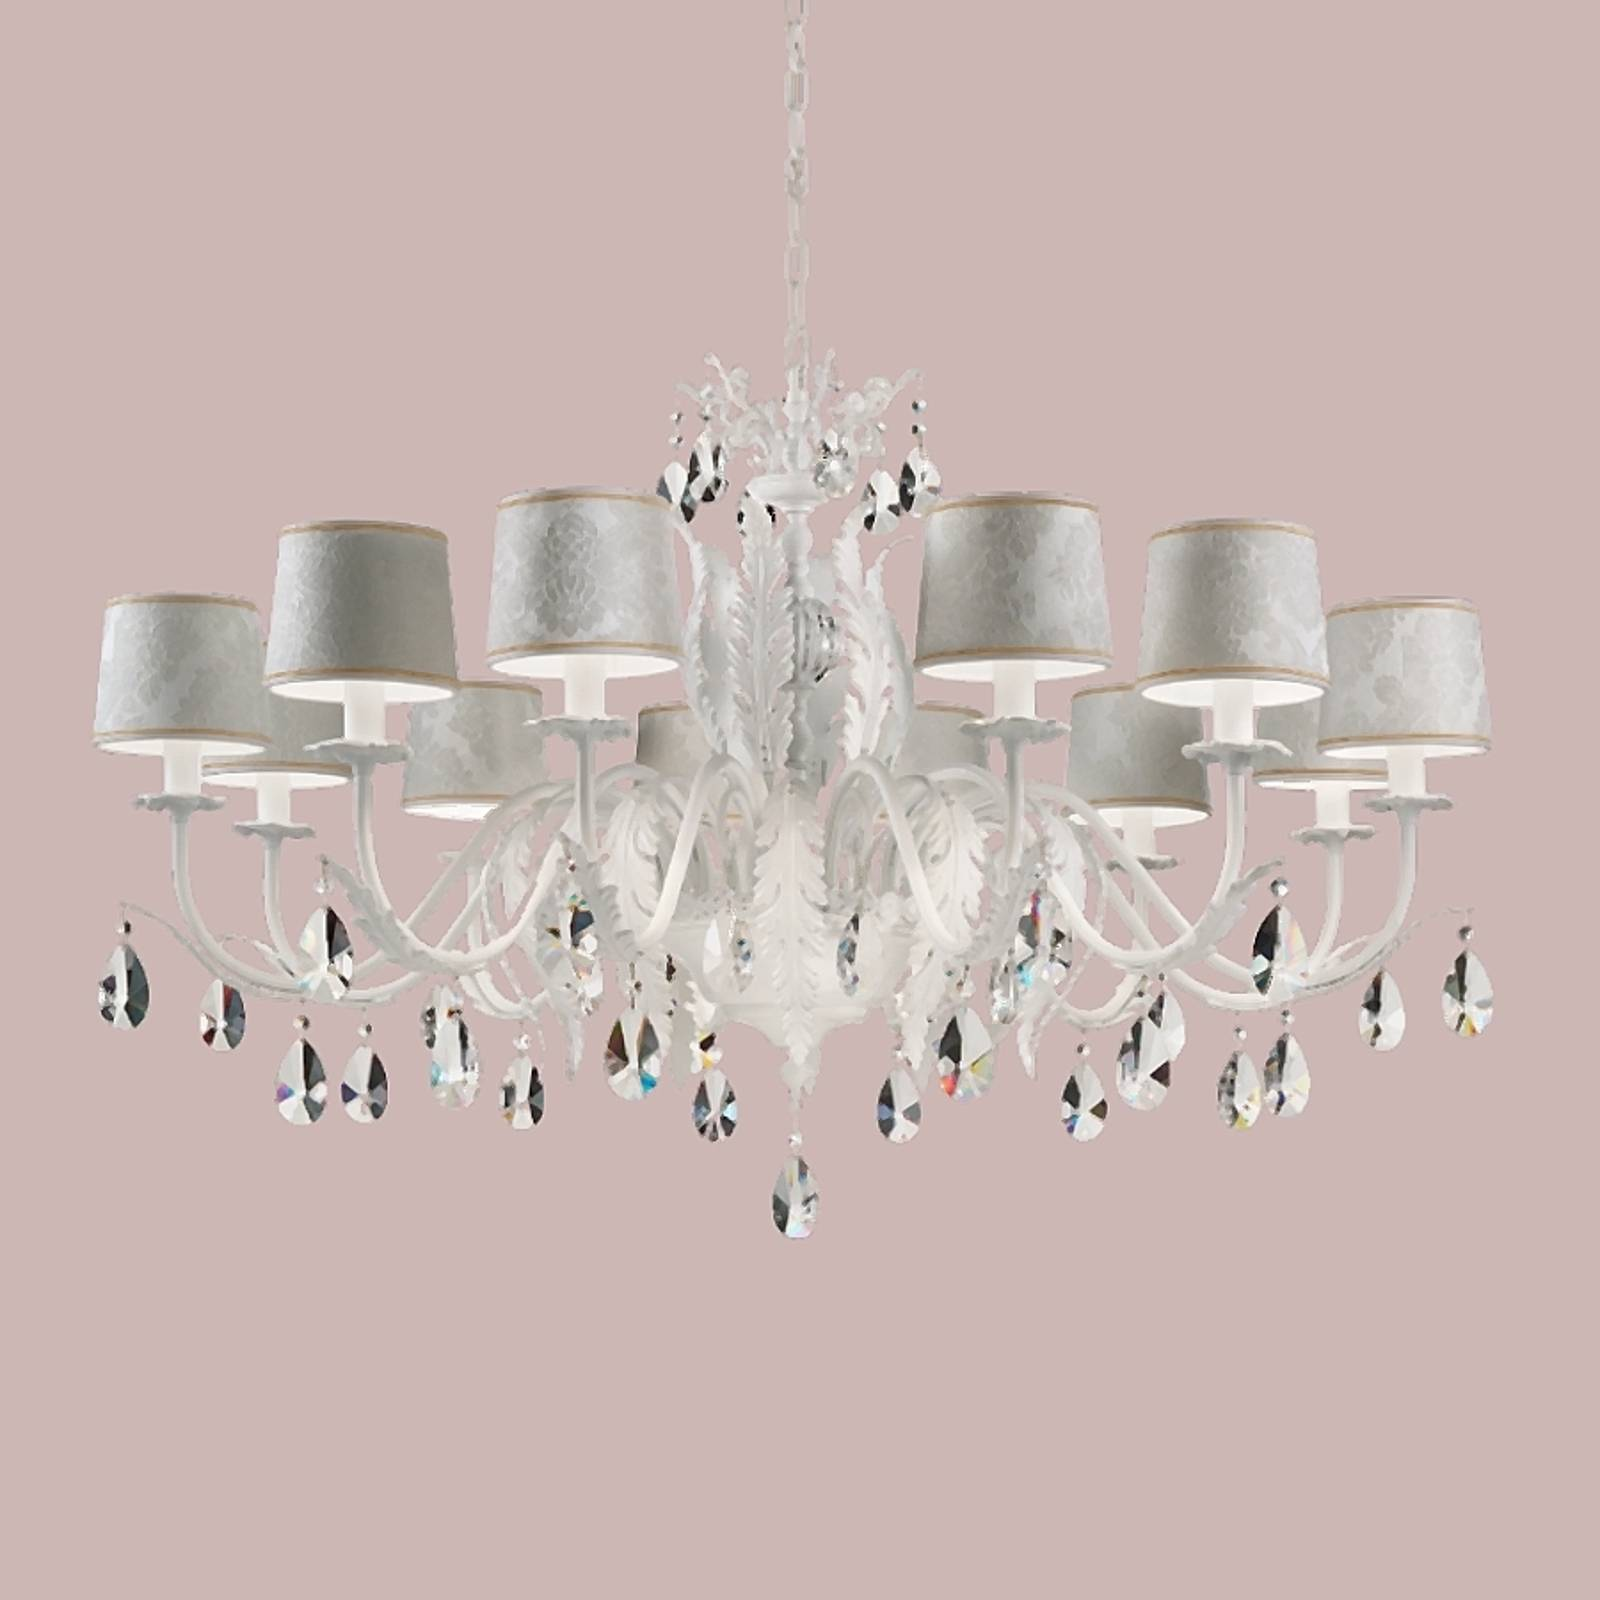 Angelis 12-bulb crystal chandelier, white from Masiero